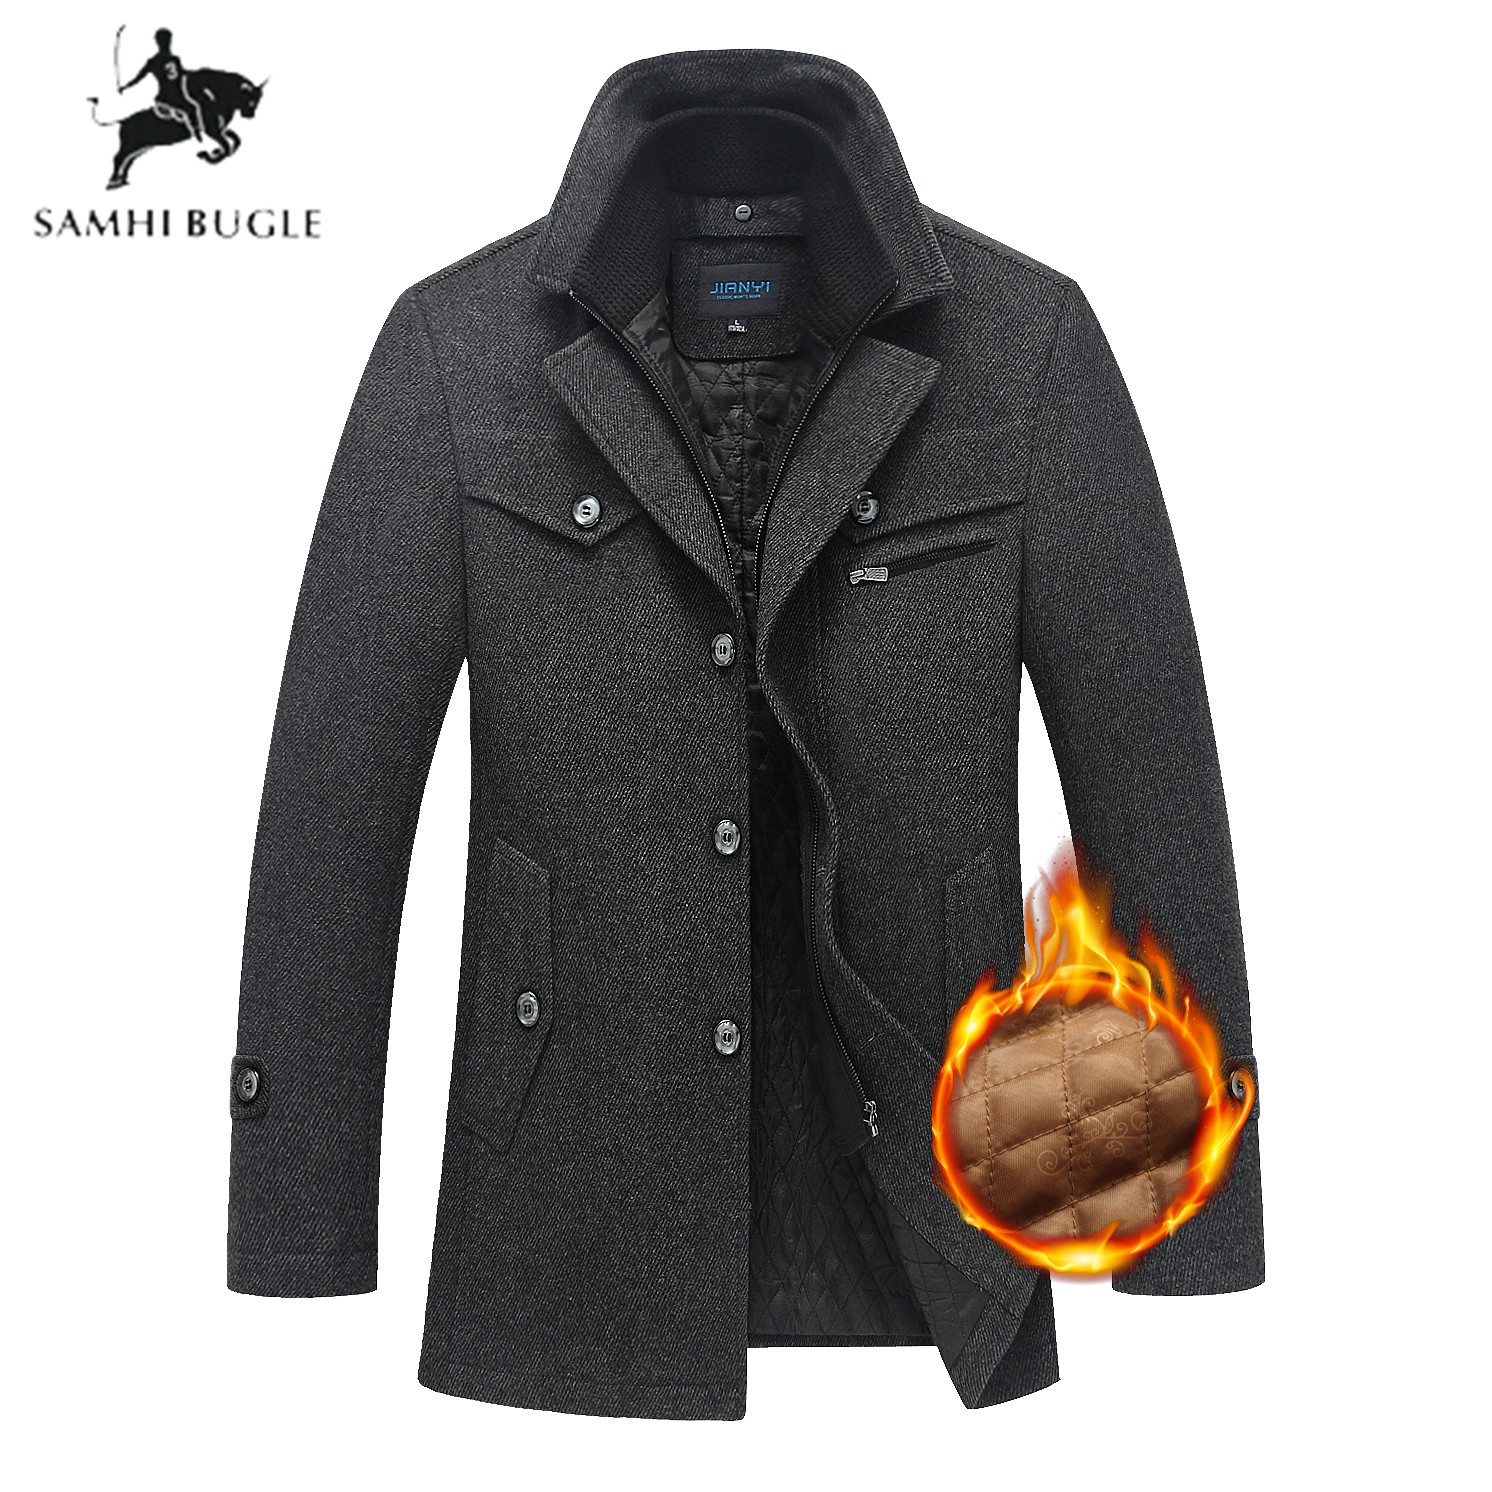 mens wool winter coats jackets Fashion Business Men's Coat Thicken Slim Windbreaker Overcoat Jacket Male Plus Size 5XL